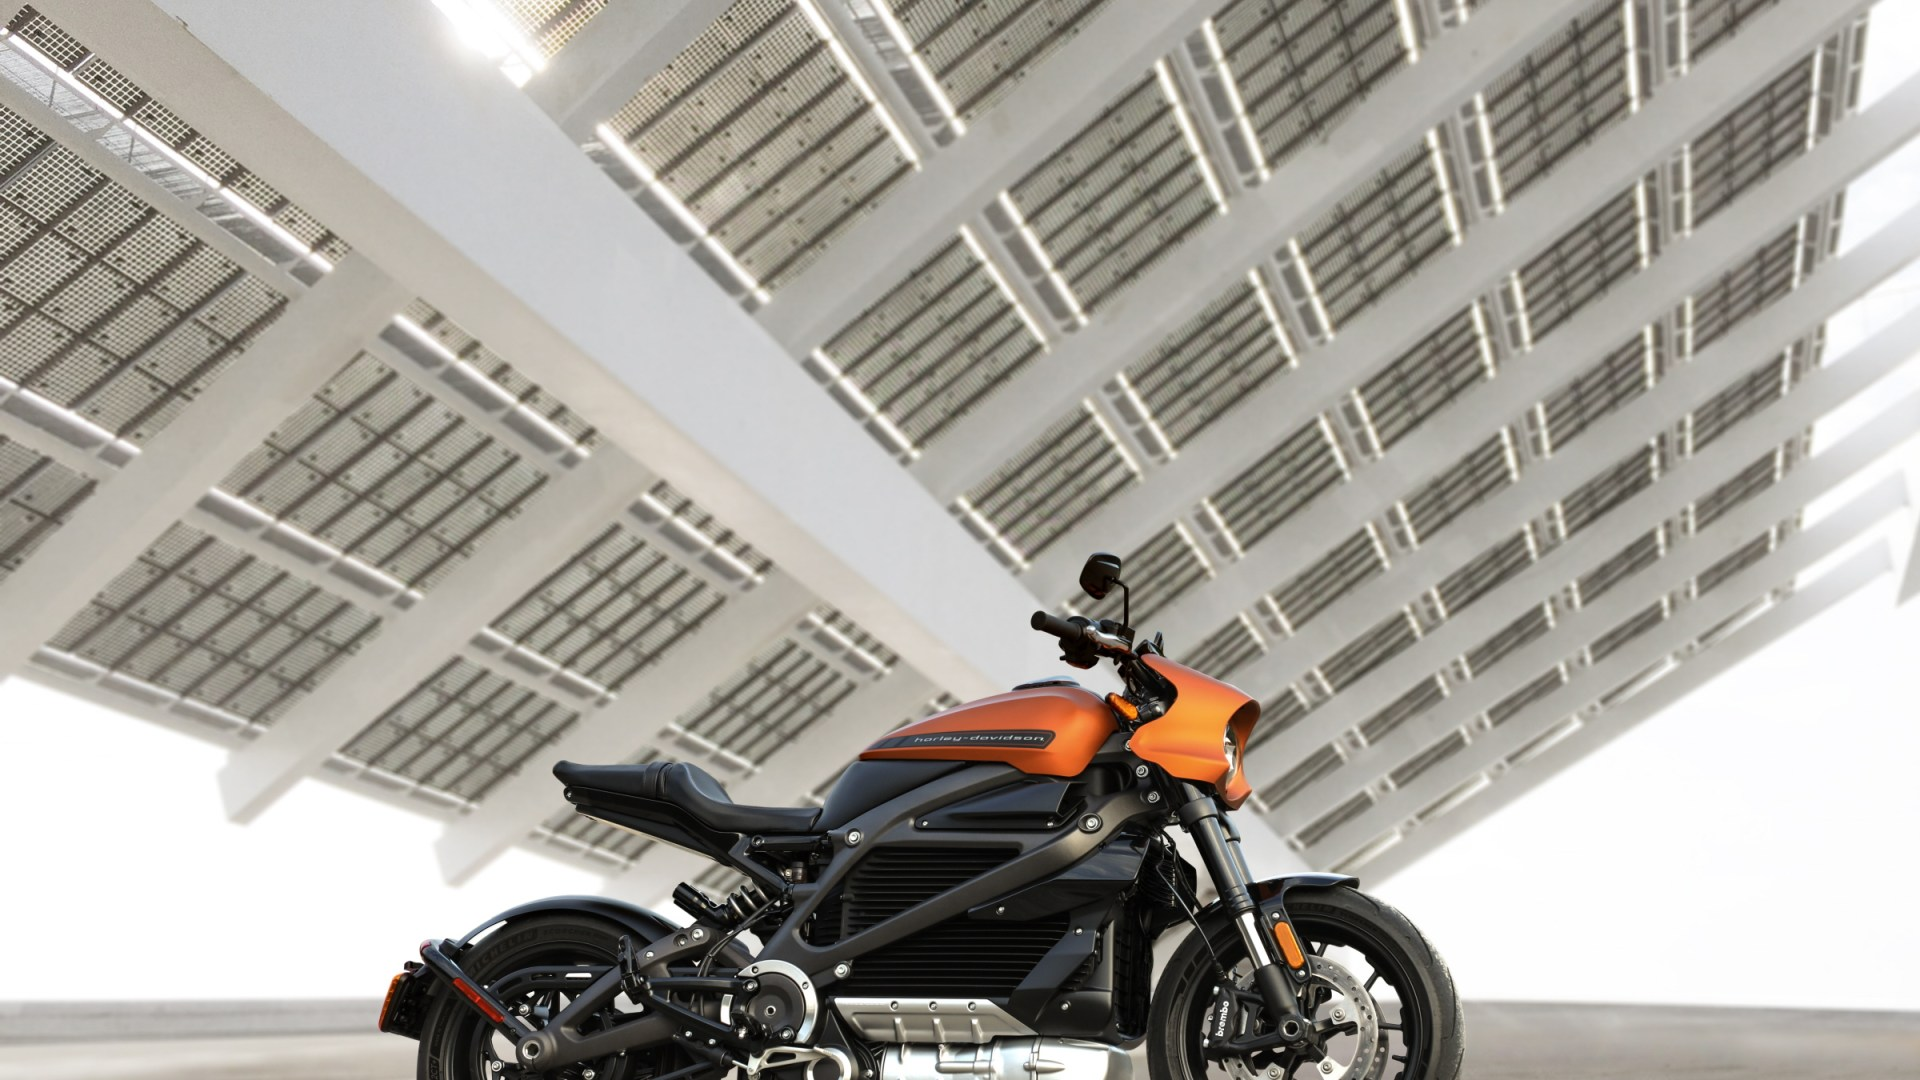 HARLEY-DAVIDSON ELECTRIFIES THE FUTURE OF TWO-WHEELS WITH DEBUT OF